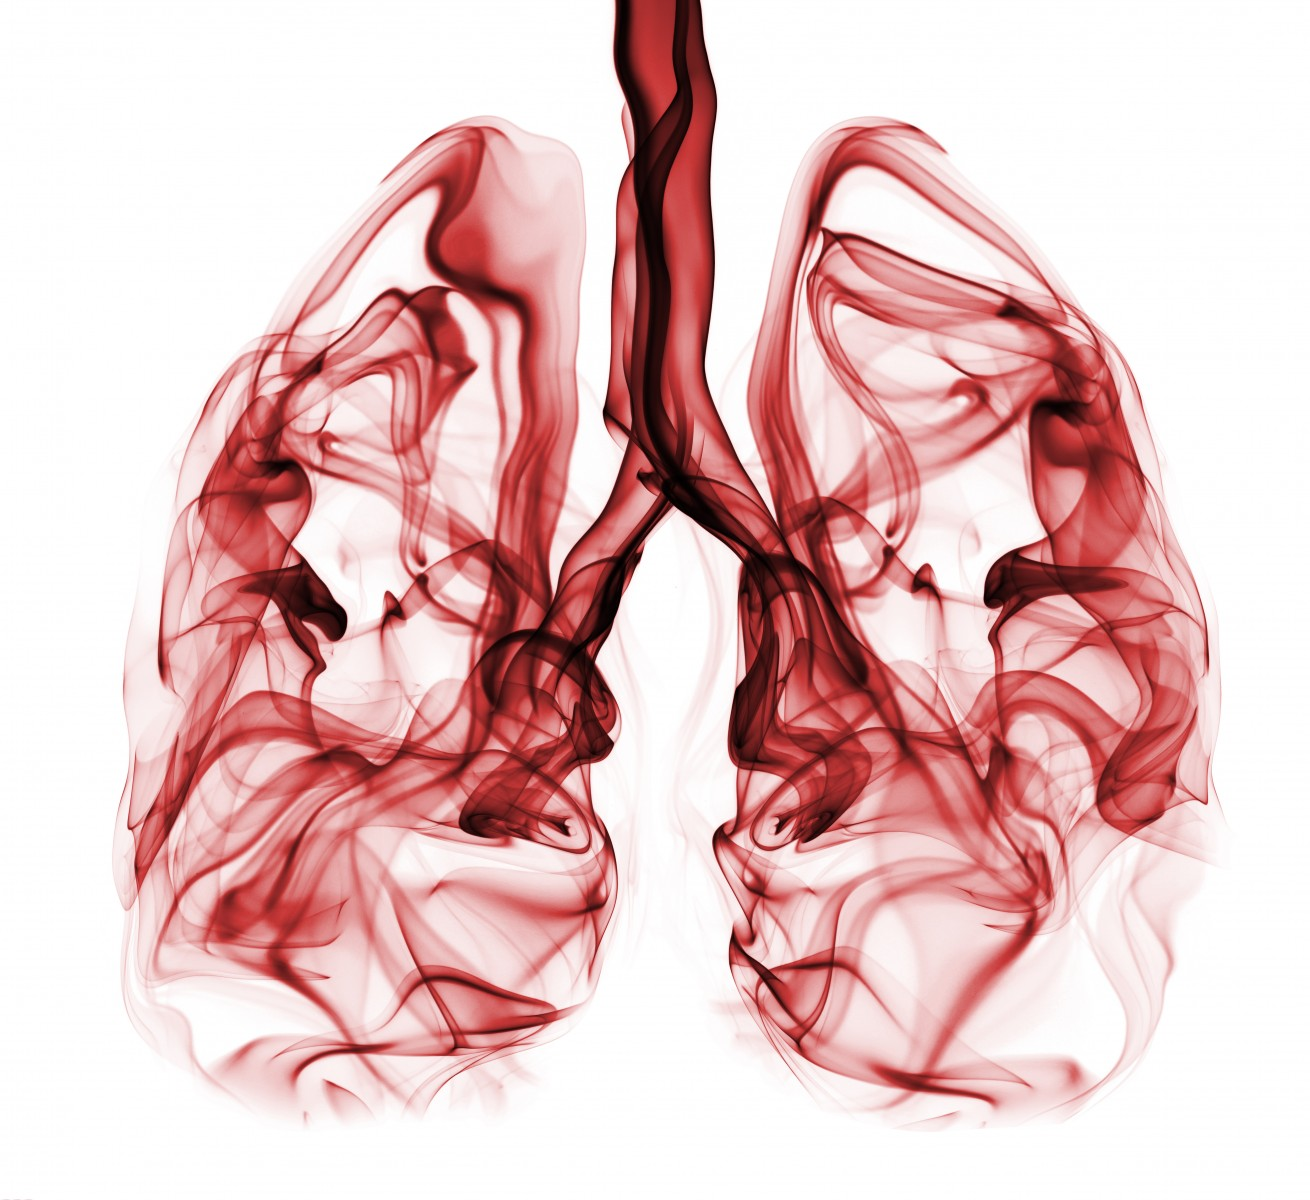 Biodesix And Inivate Collaborate To Test Next Generation Sequencing Blood Test for Lung Cancer